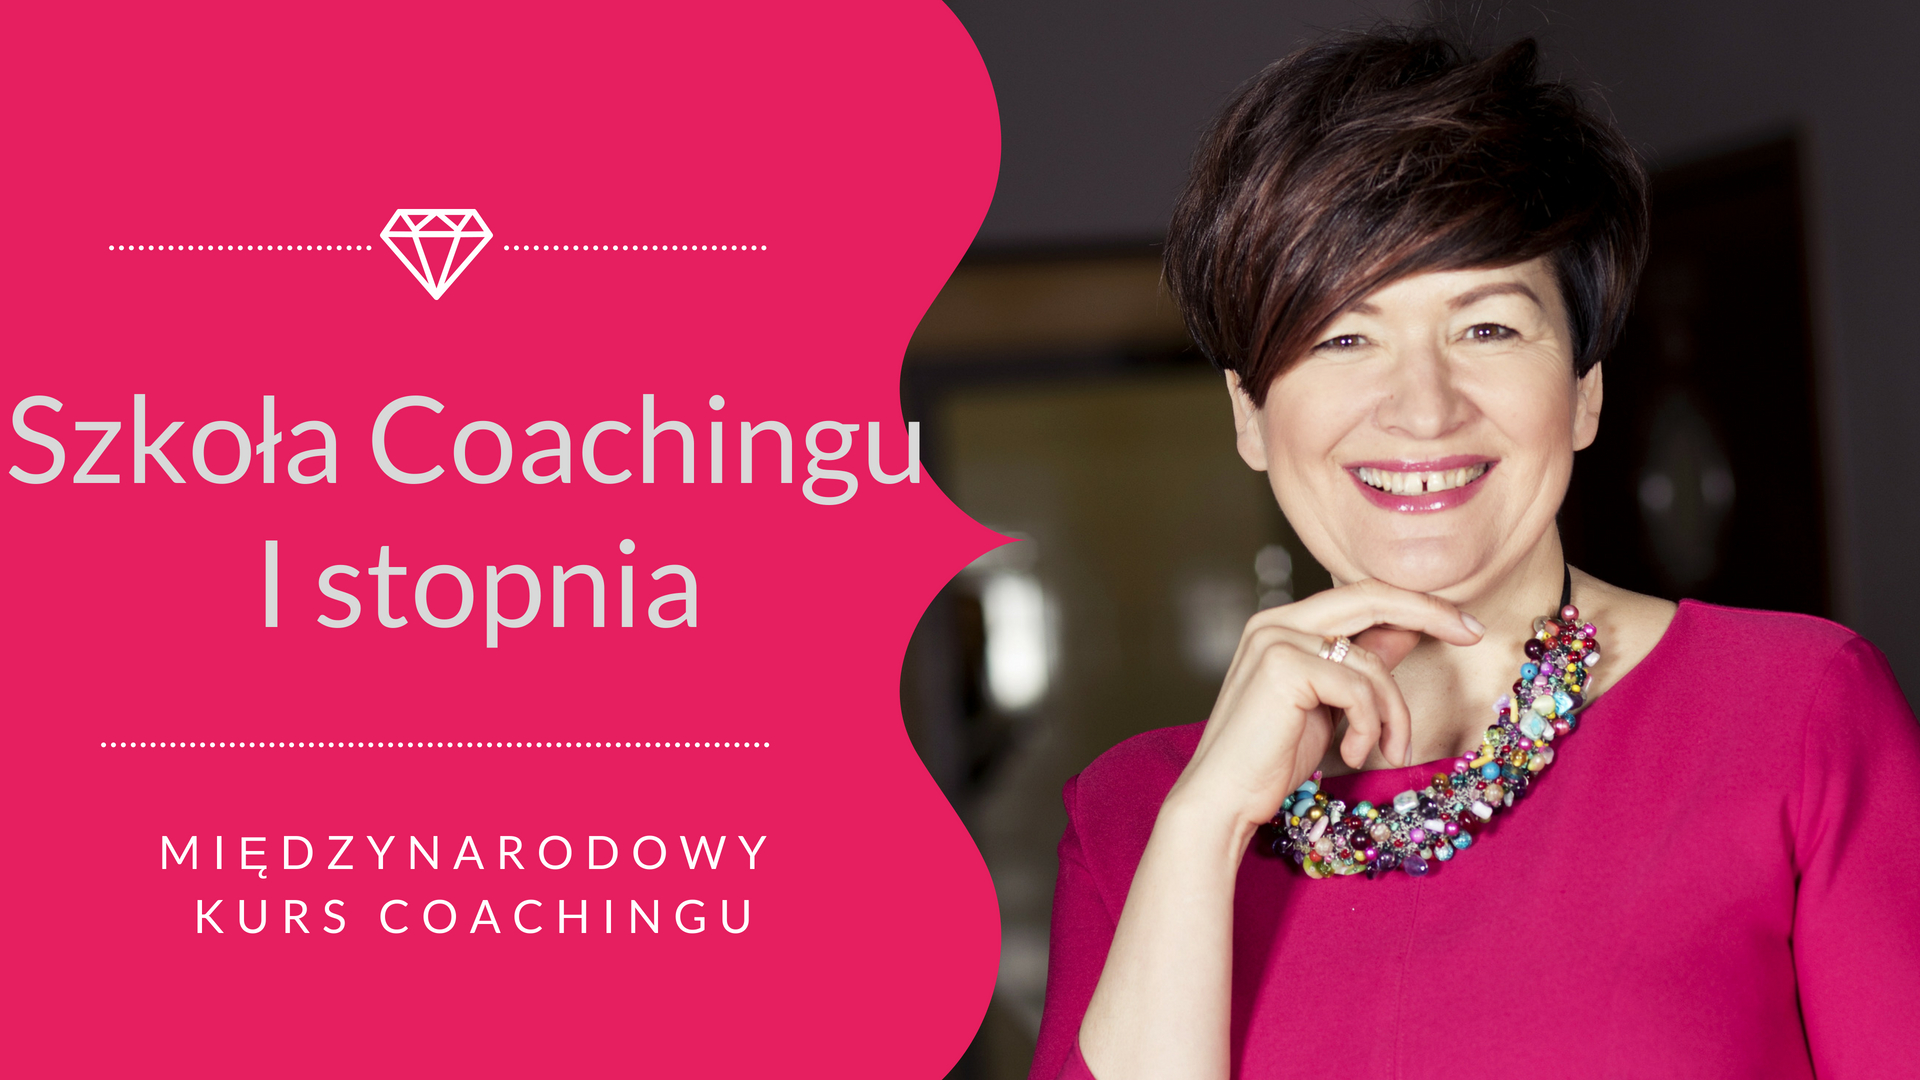 Szkoła Coachingu - Szkoła Coachingu I stopnia – Advanced Fundamental Coaching Skills ICI